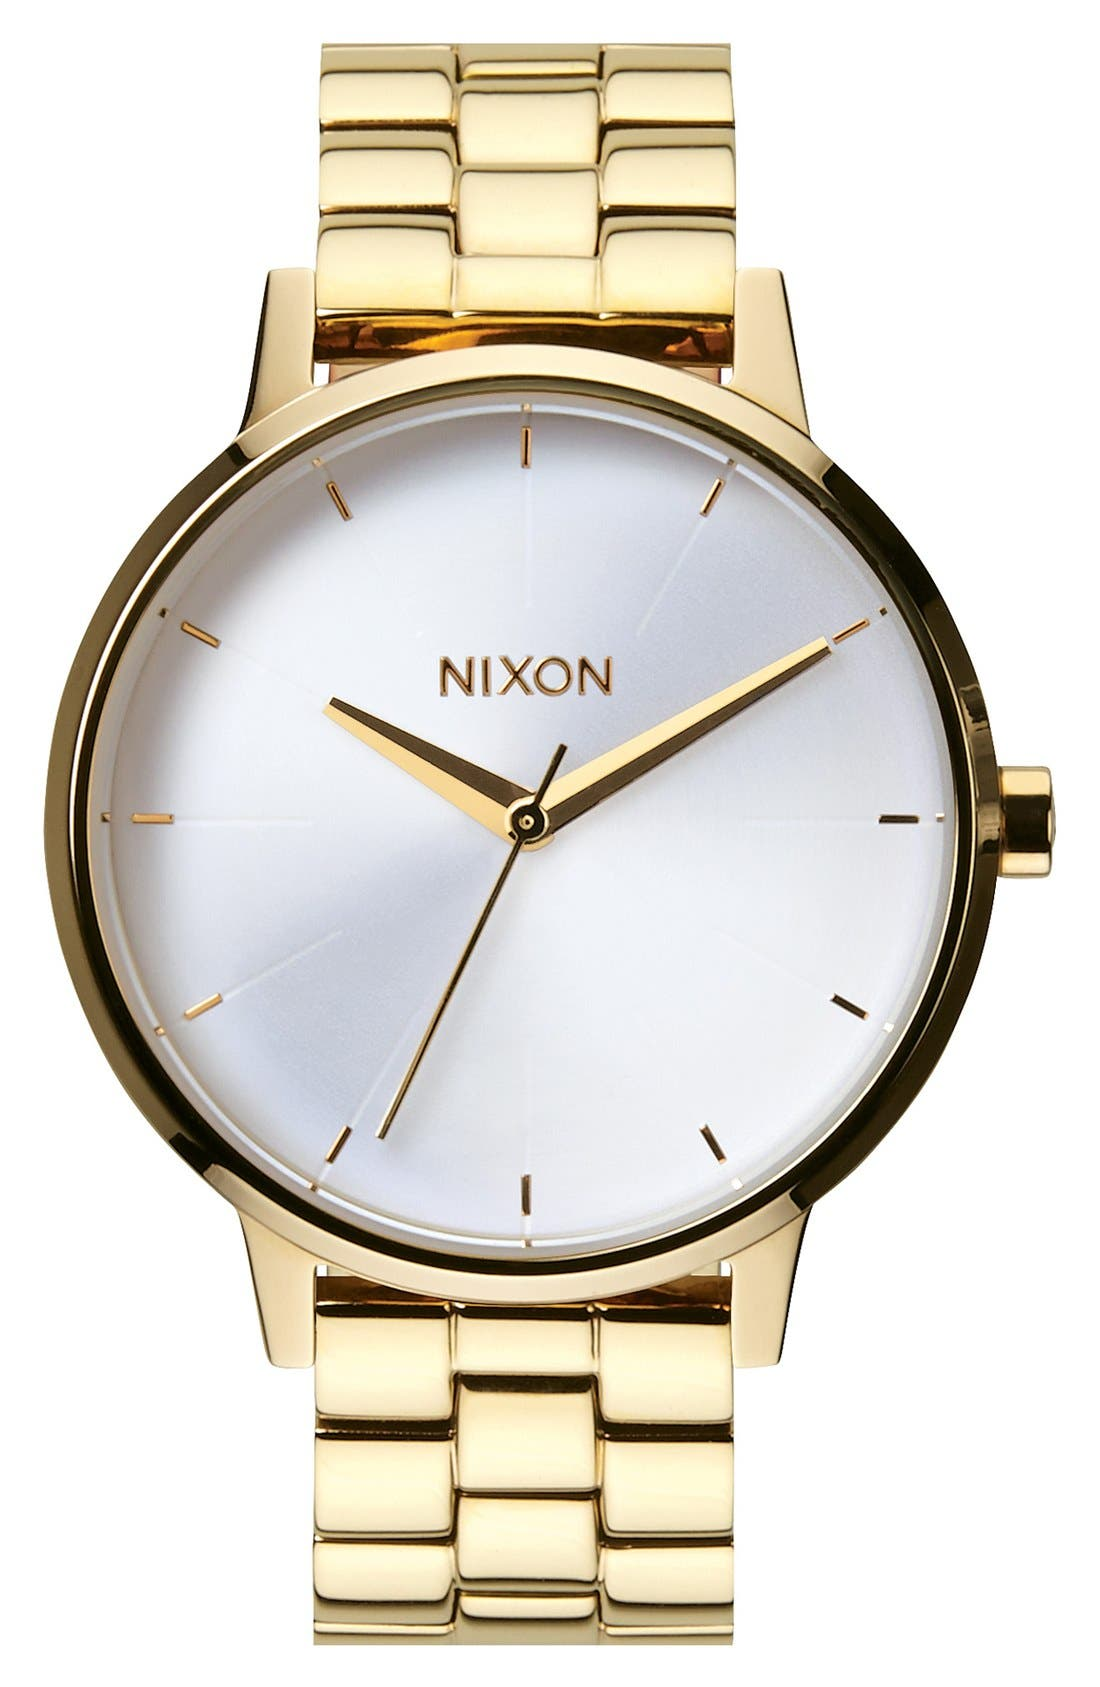 NIXON The Kensington Bracelet Watch, 37mm